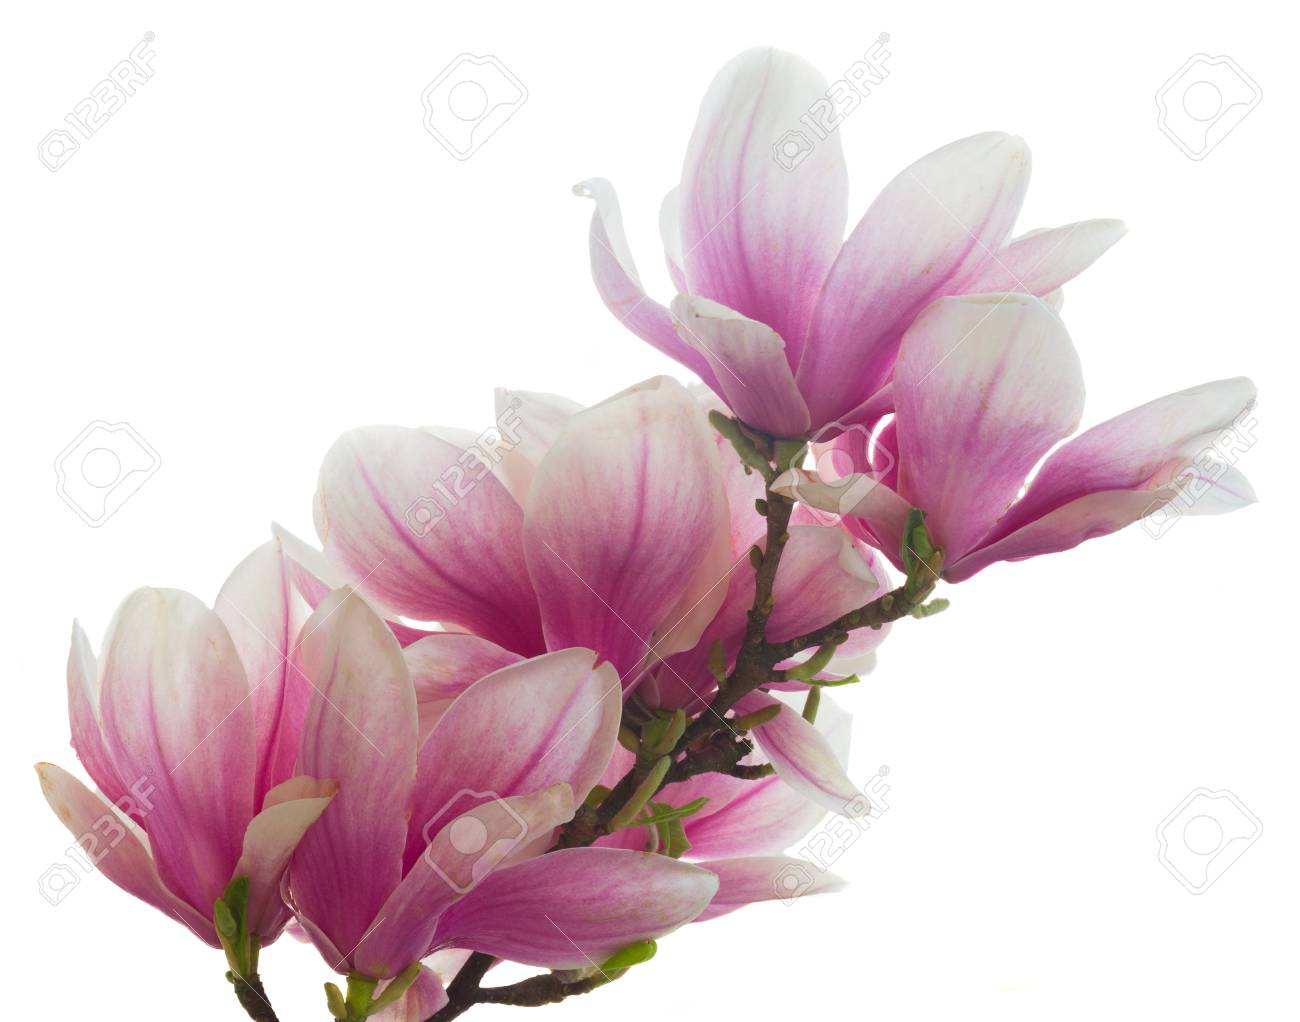 Magnolia Pink Flowers Blossom Isolated On White Background Stock